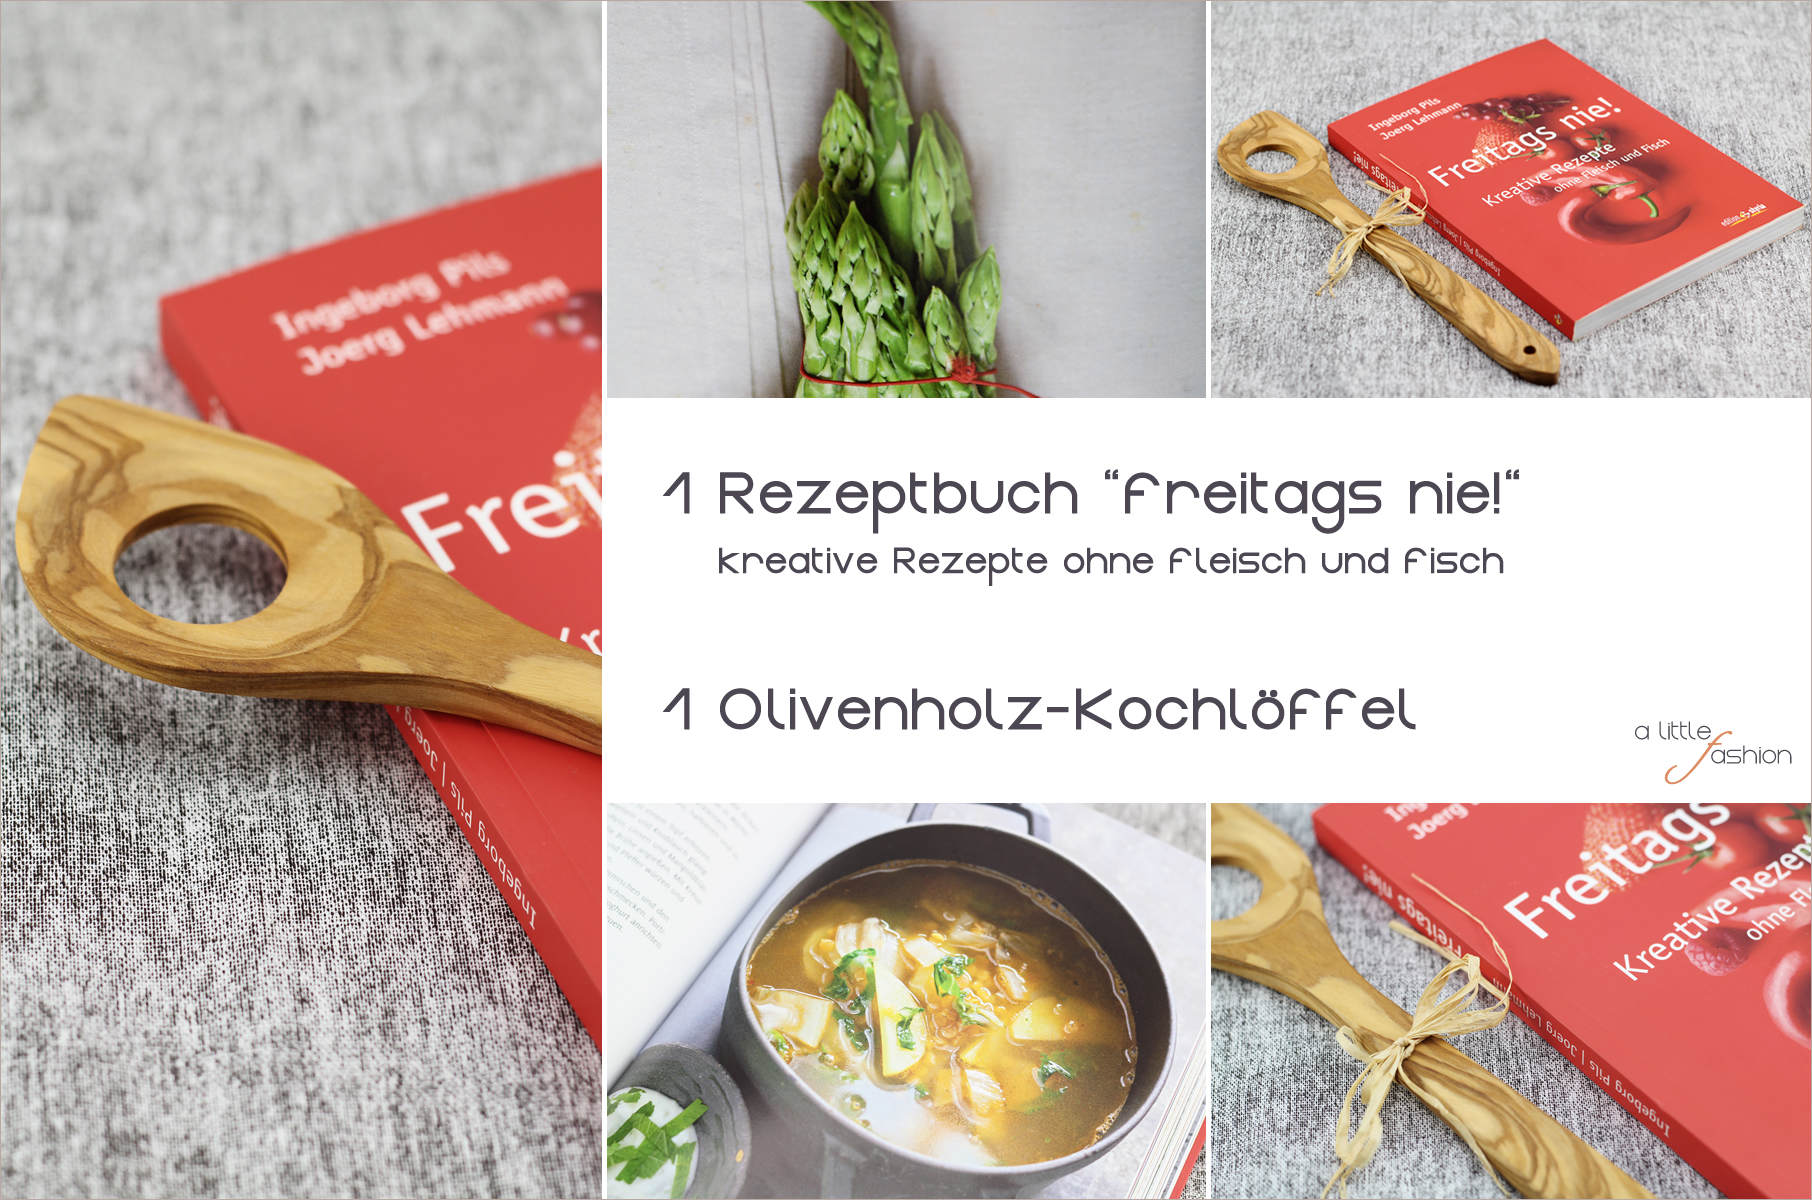 Gewinnt ein vegetarisches Kochbuch & einen Olivenholz-Kochlöffel! | https://www.filizity.com/food/alittlefashion-geburtstagssause-giveaway-5